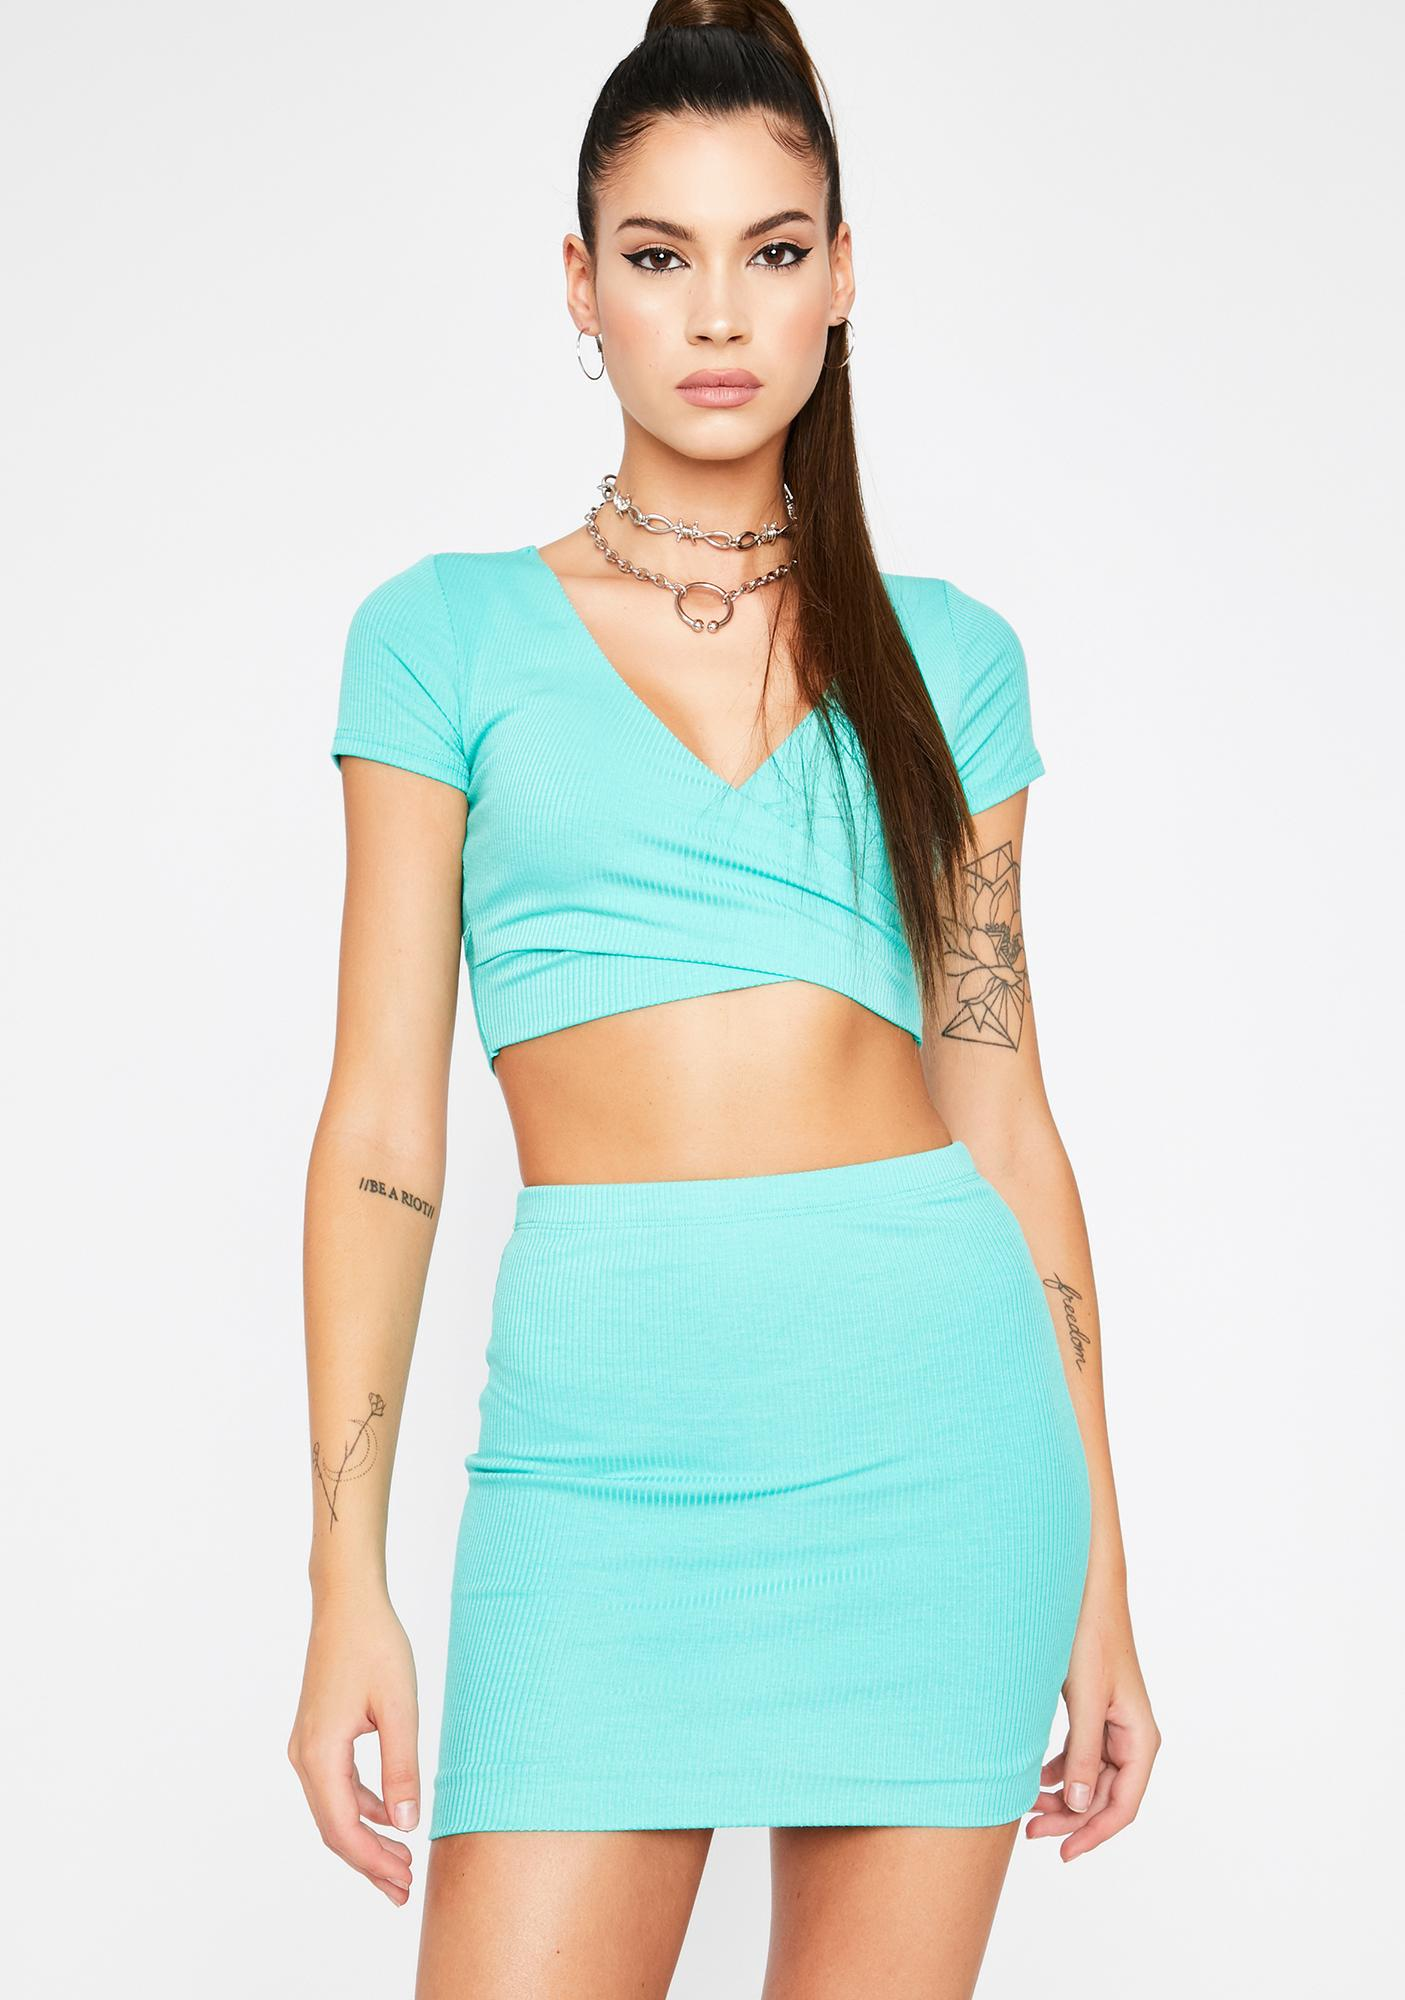 Wavy Lowkey Thottie Skirt Set